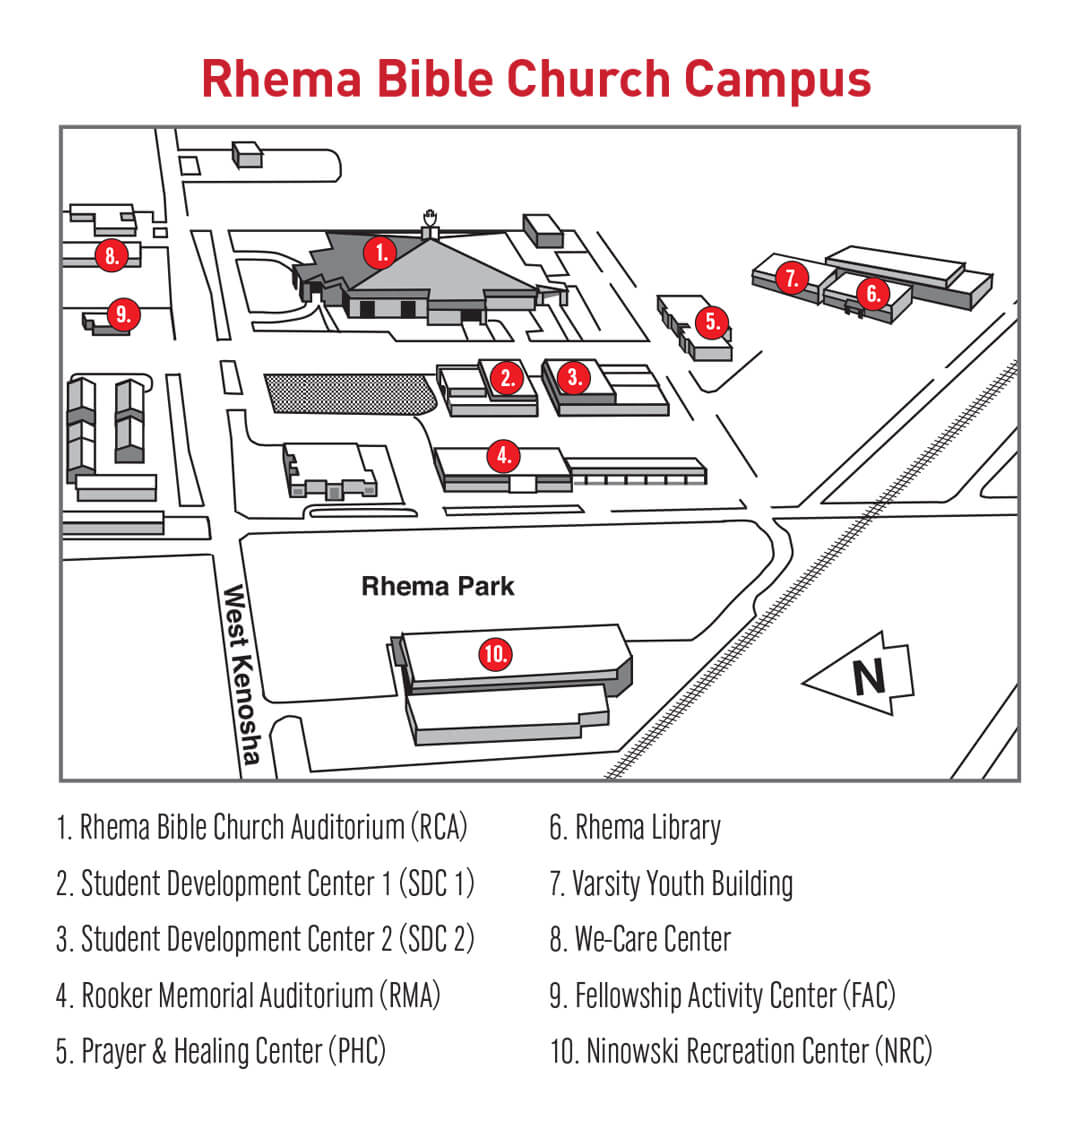 Rhema Bible Church Campus Map